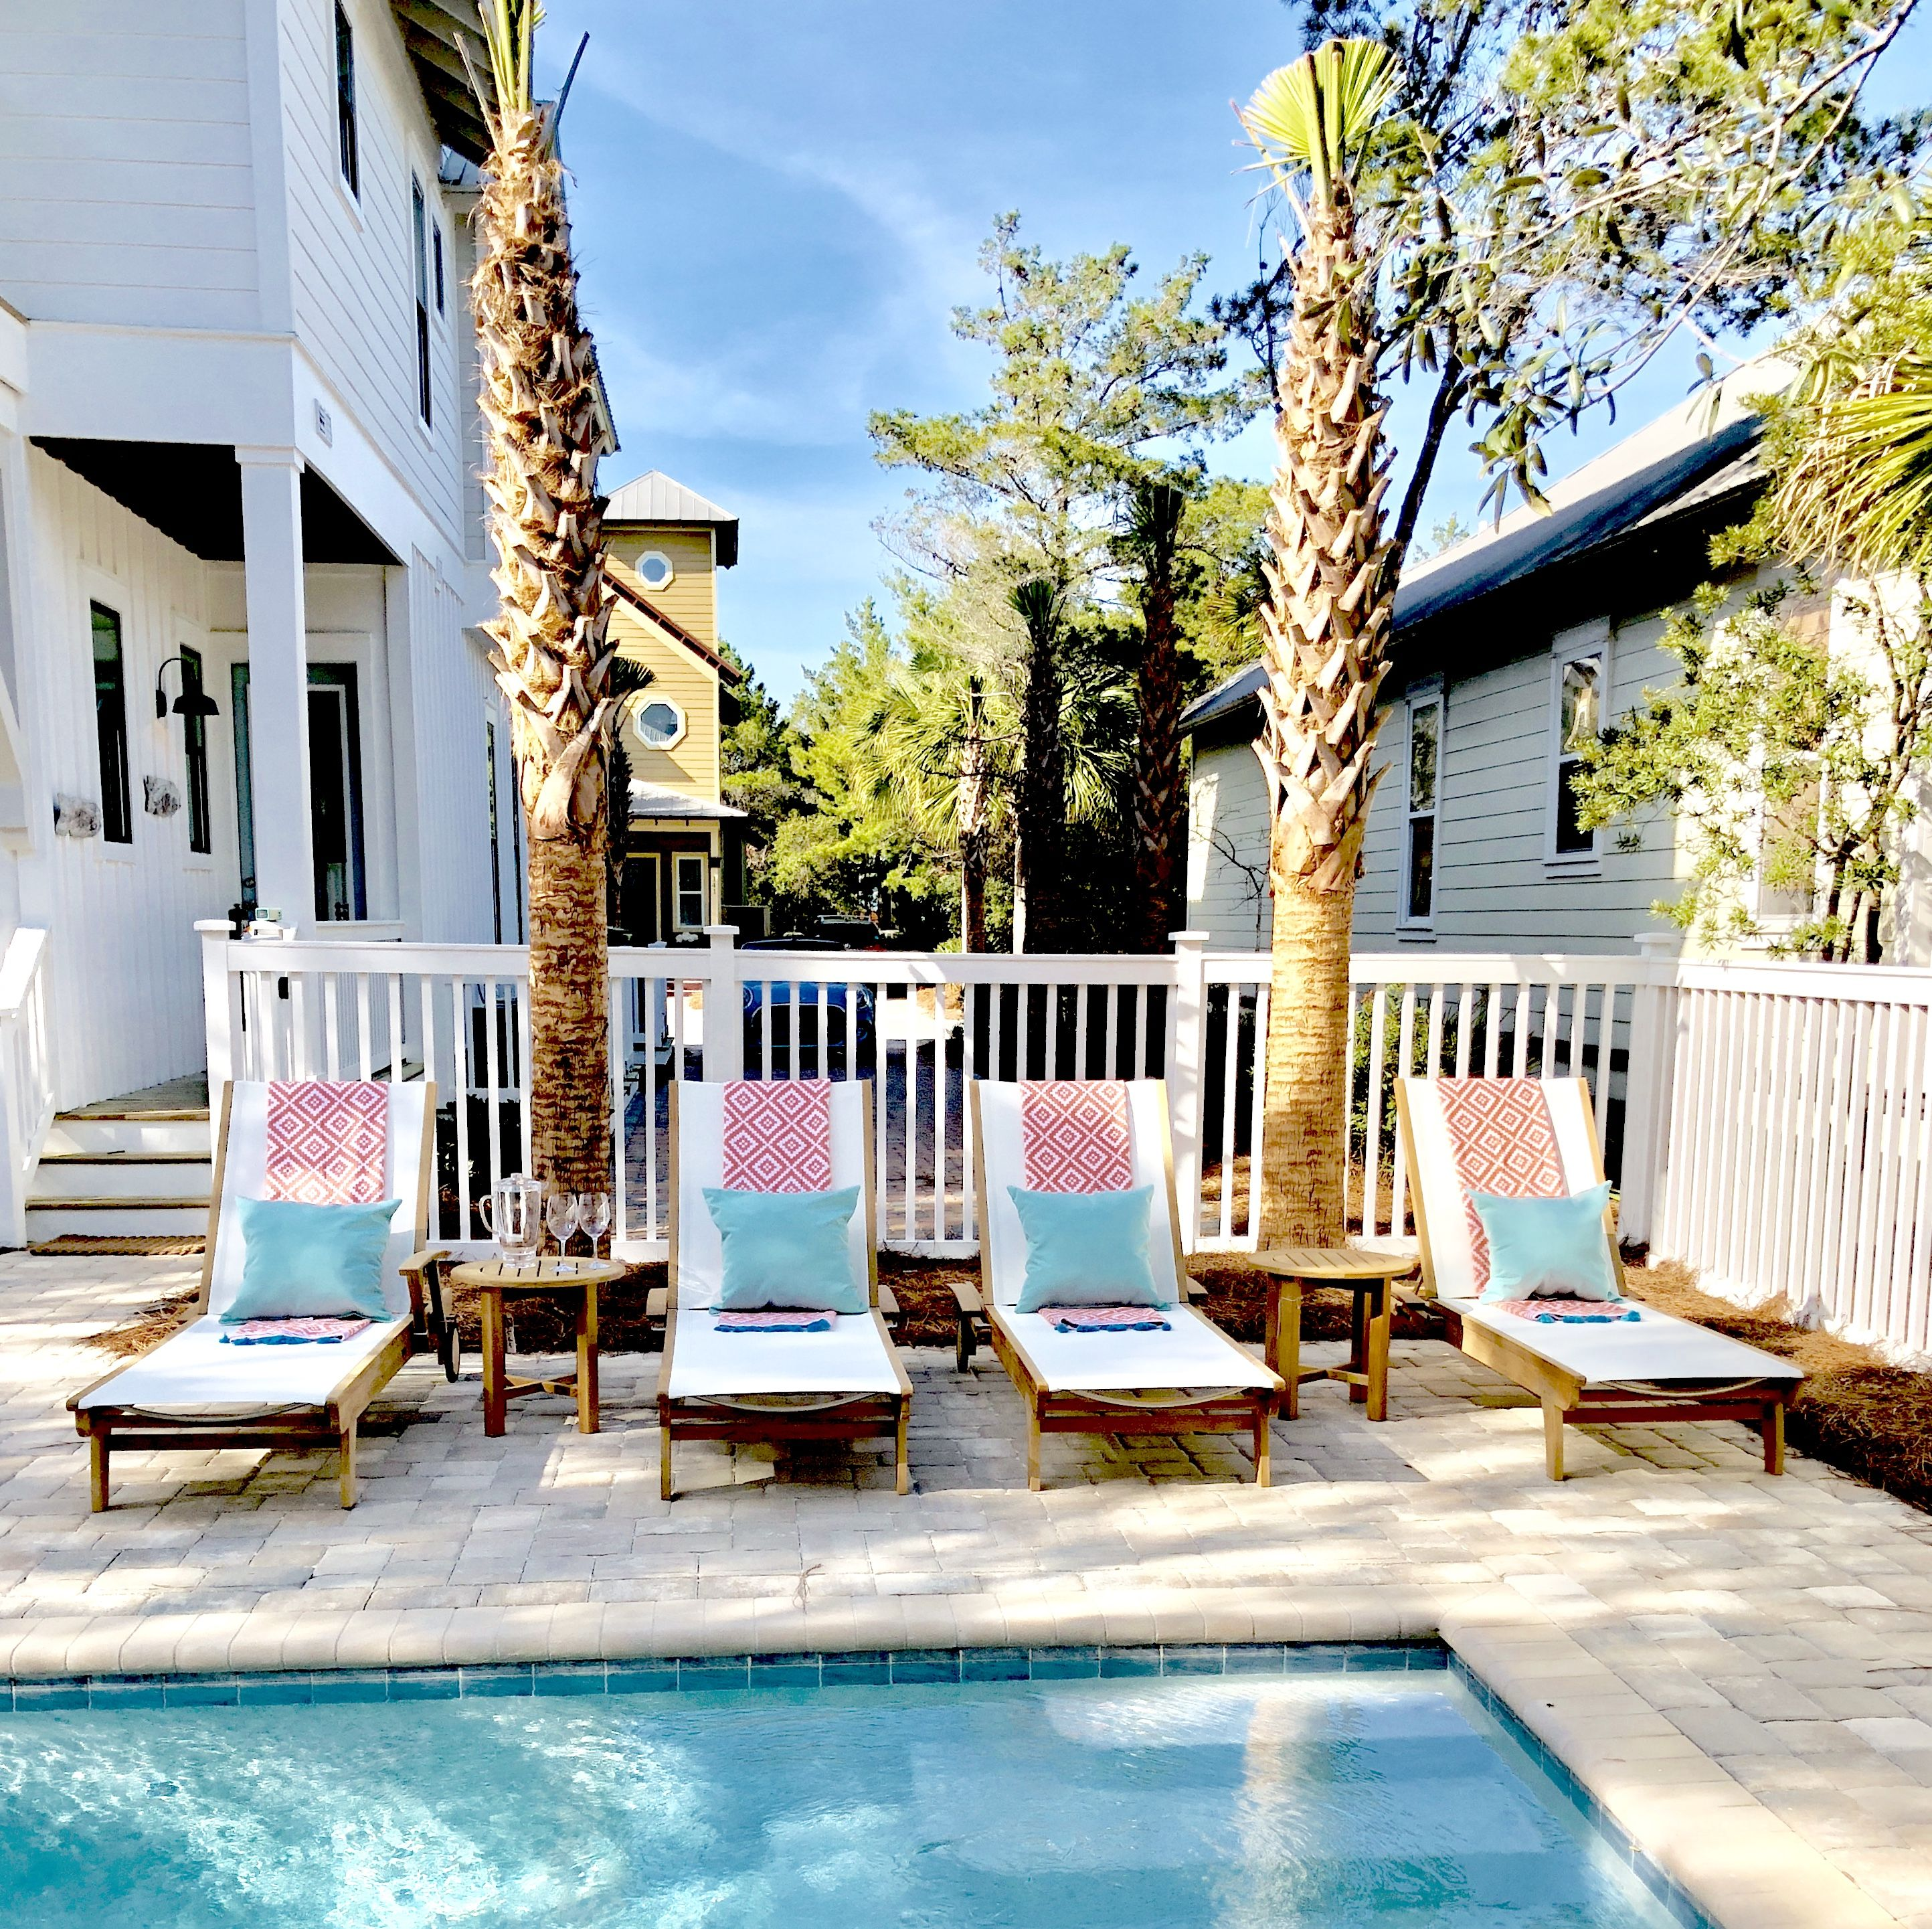 Pool envy Outdoor chairs, Porch swing, Outdoor